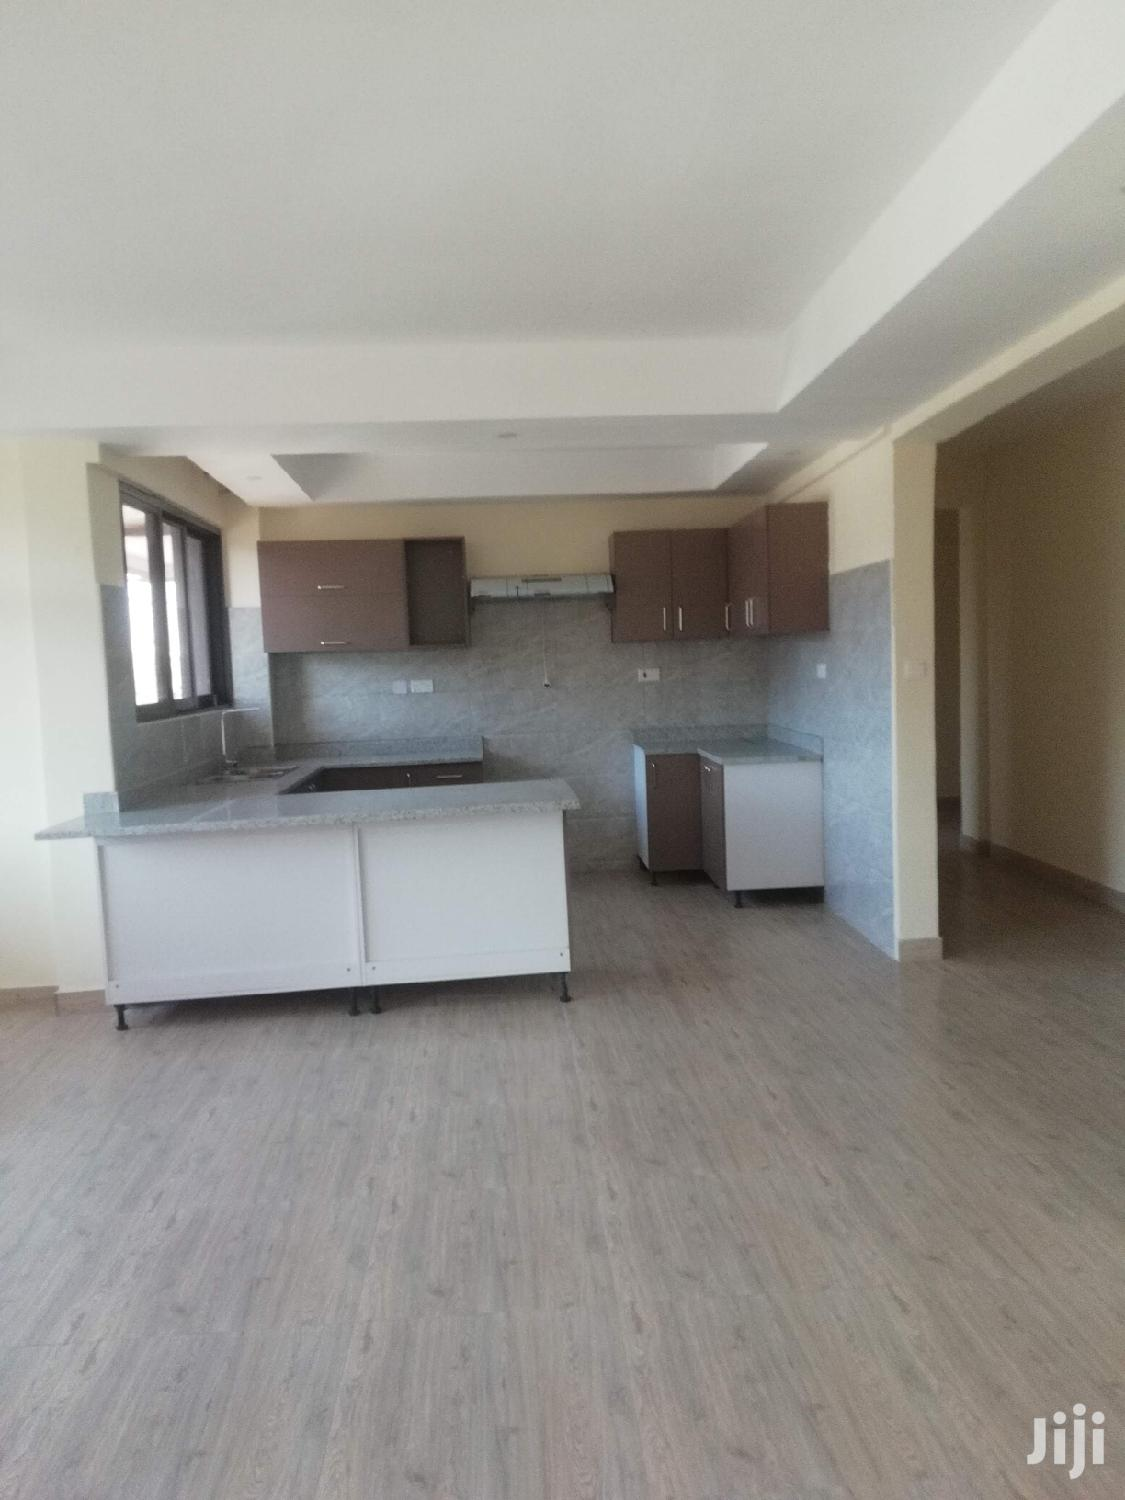 Property World;2br Apartment All Ensuite,Lift and Secure